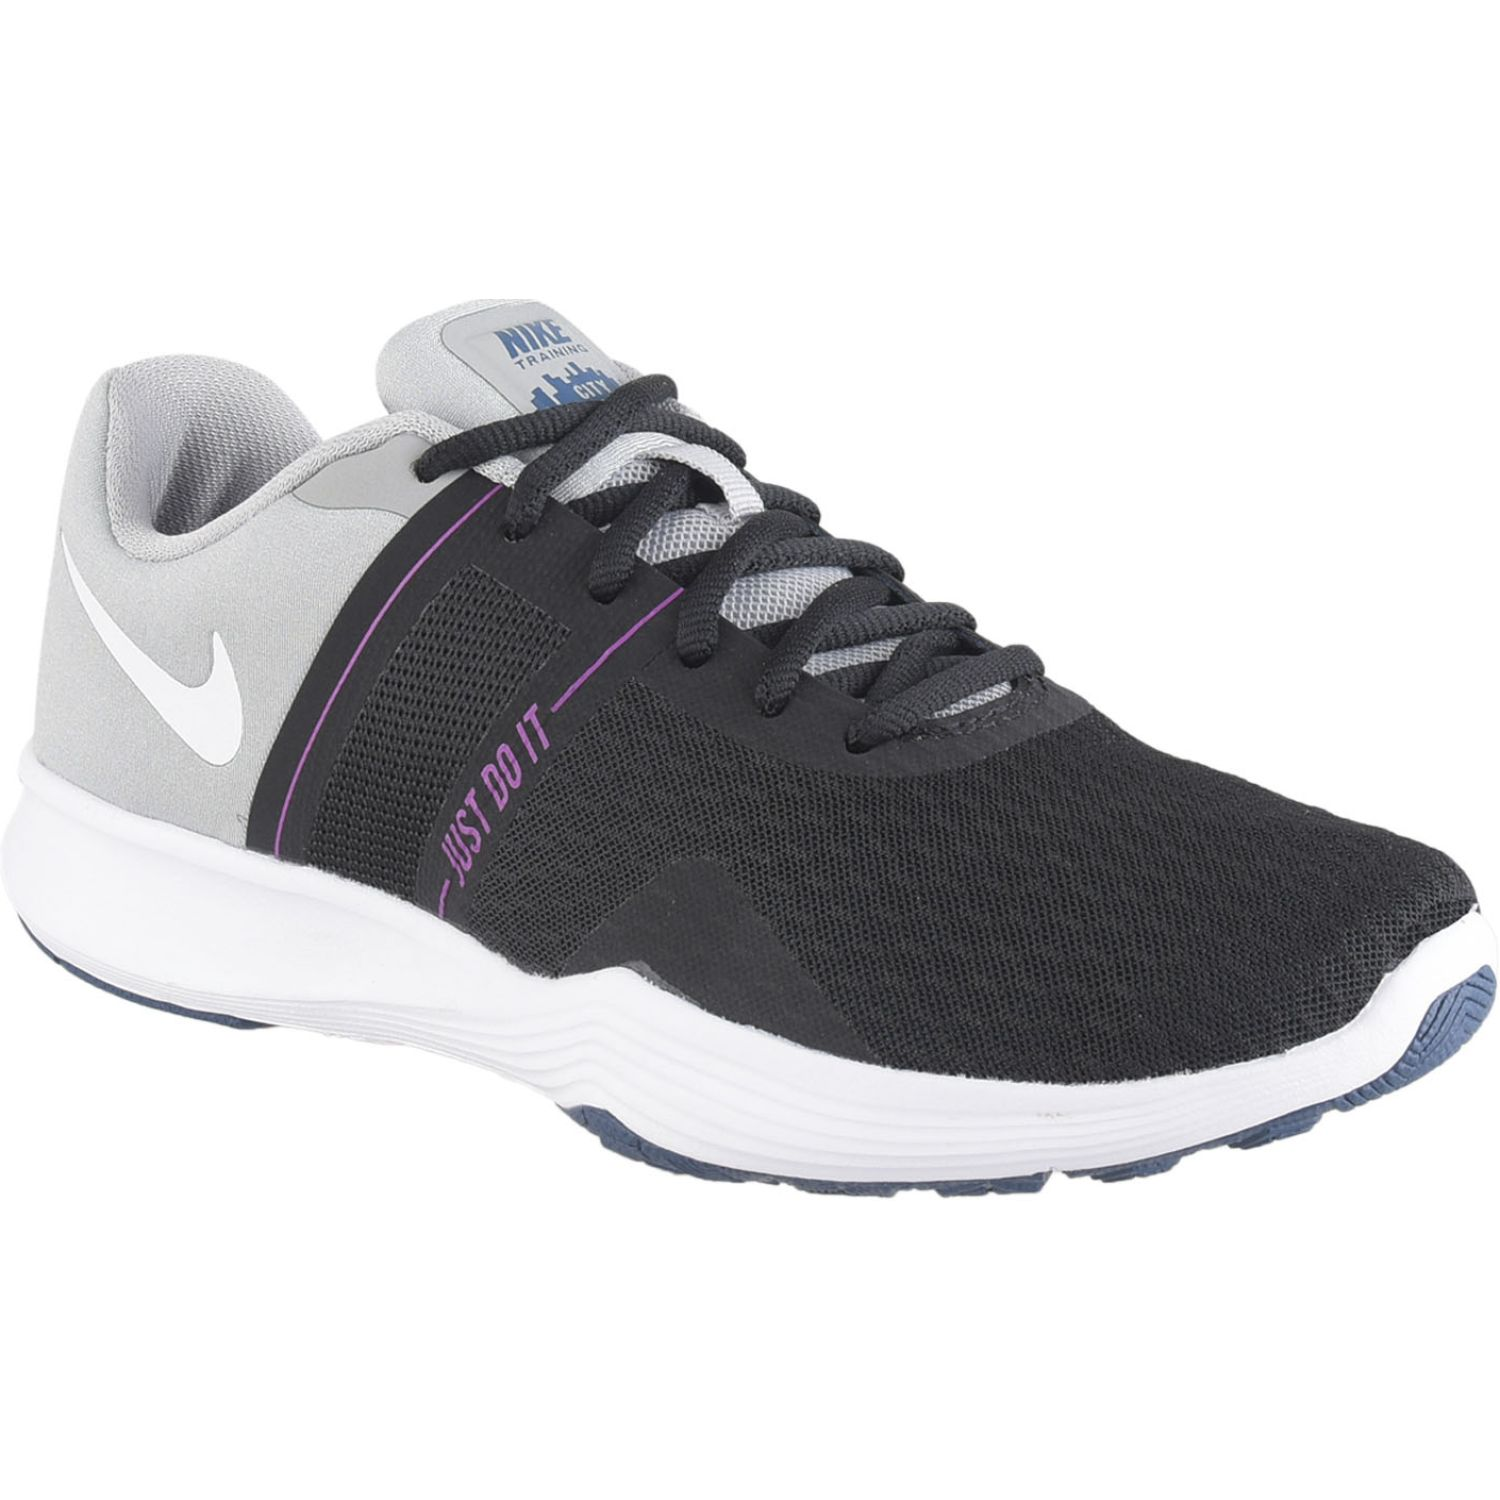 Nike wmns nike city trainer 2 Gris / negro Mujeres